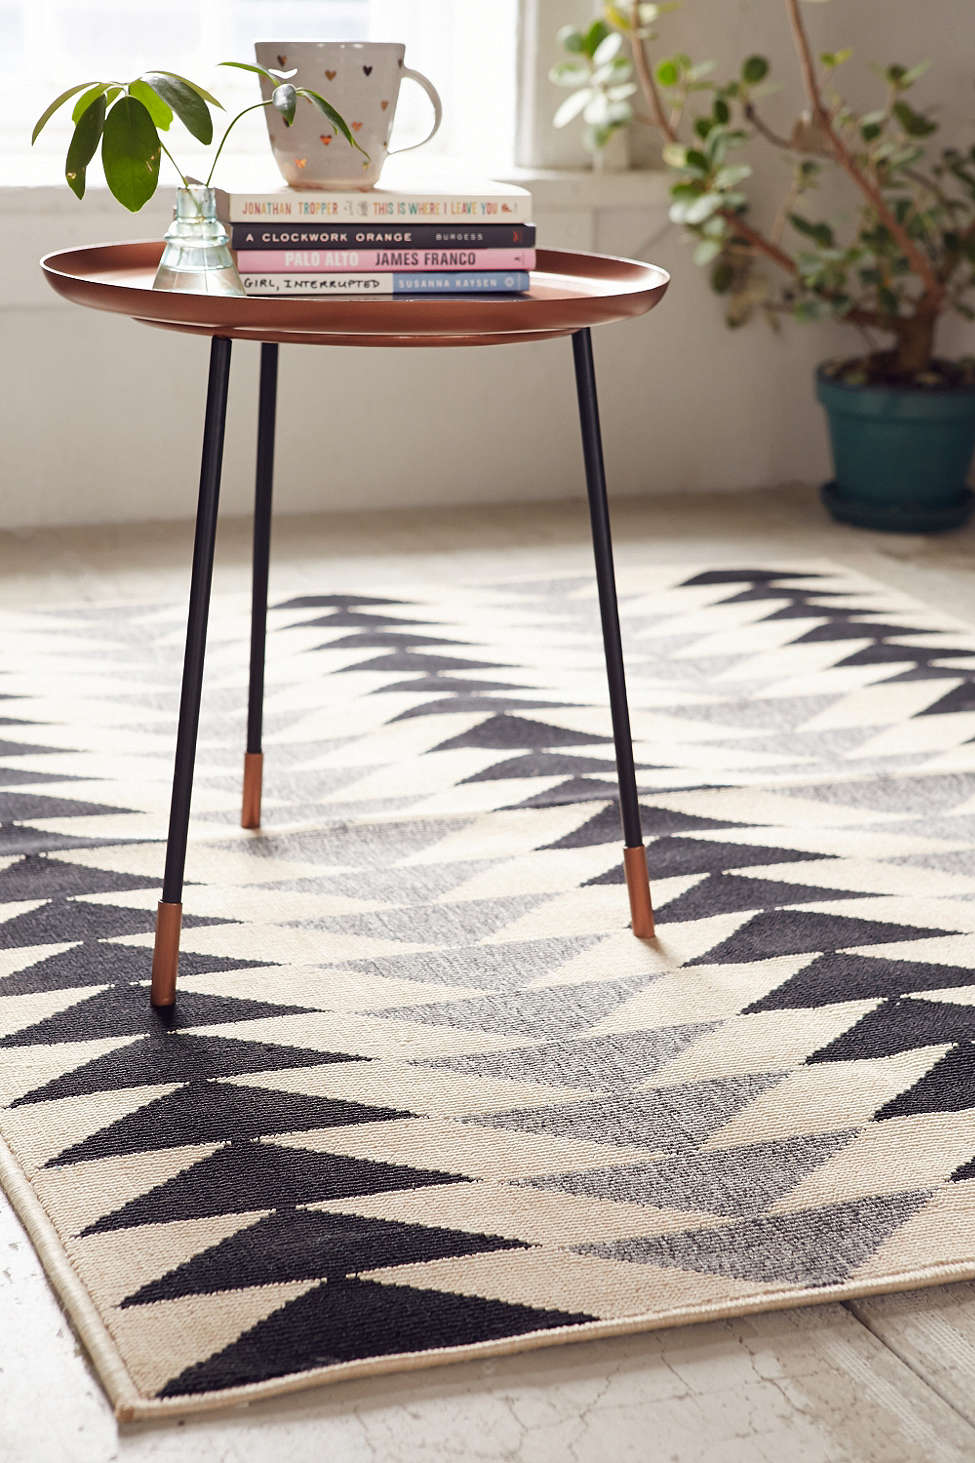 Geo rug from Urban Outfitters